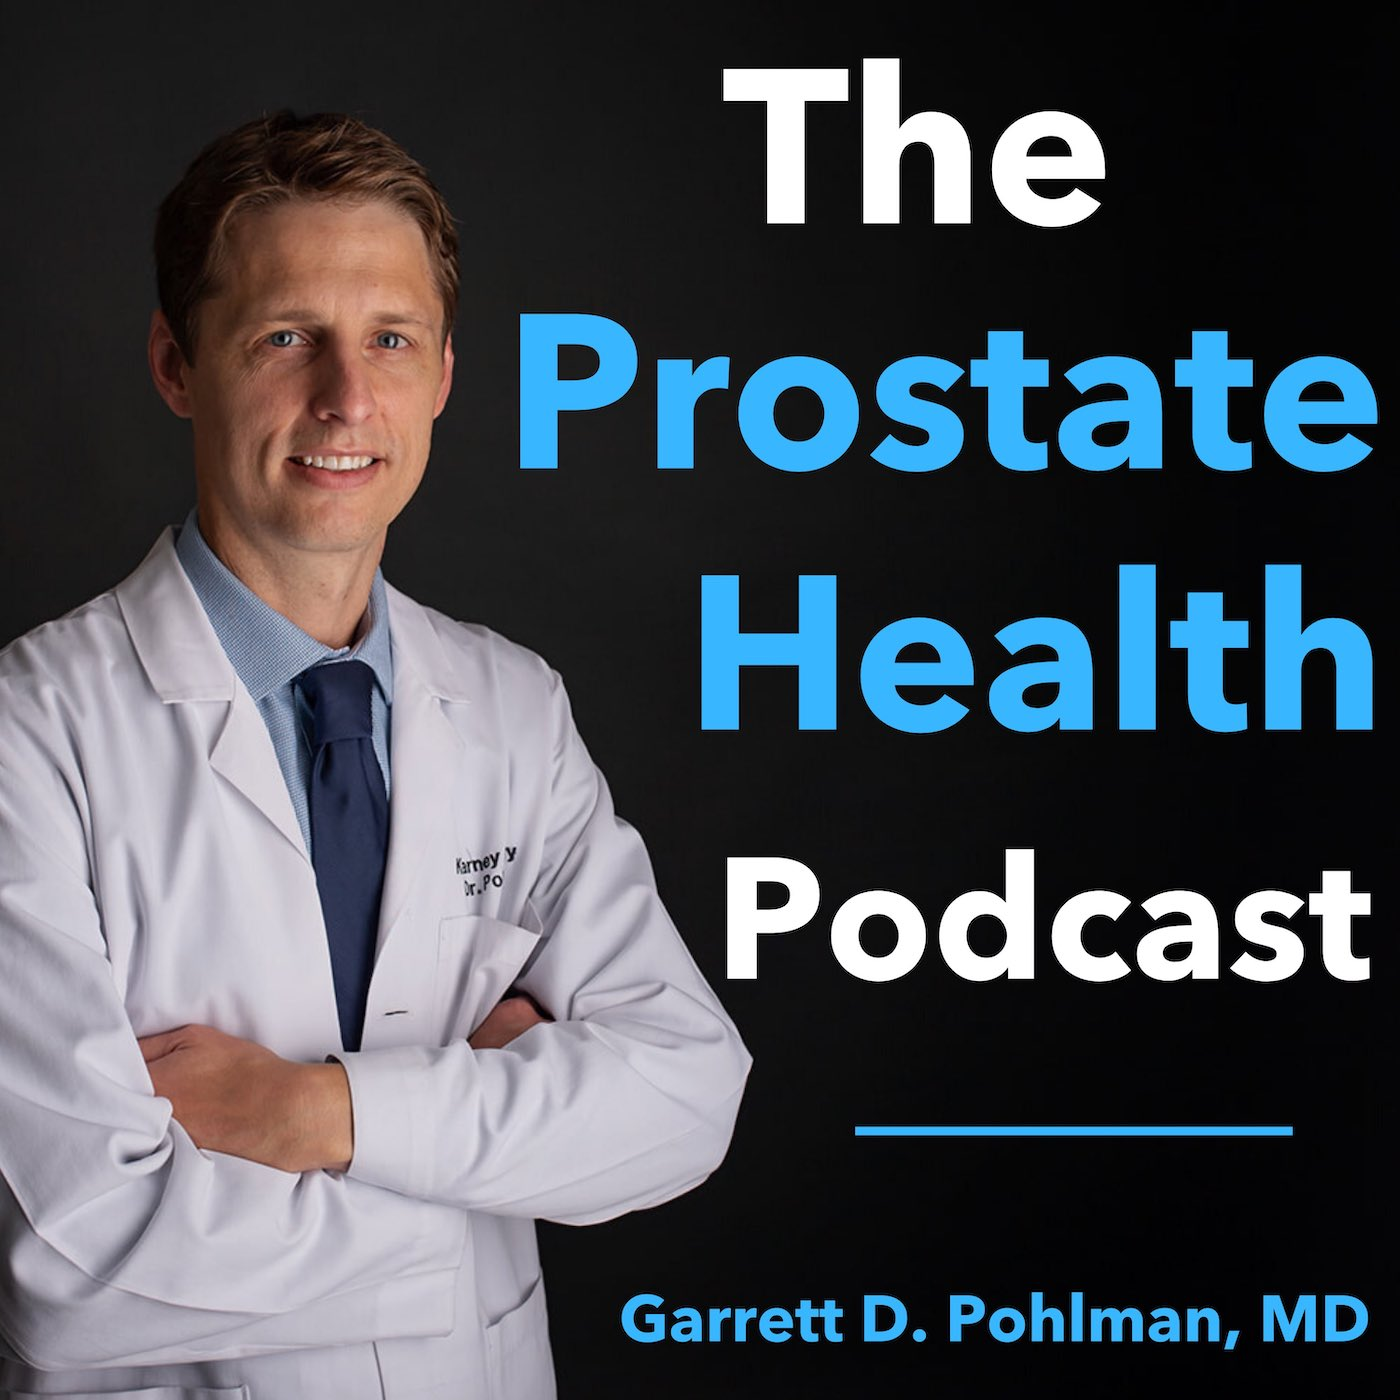 Dr. Pohlman - Prostate Health Podcast